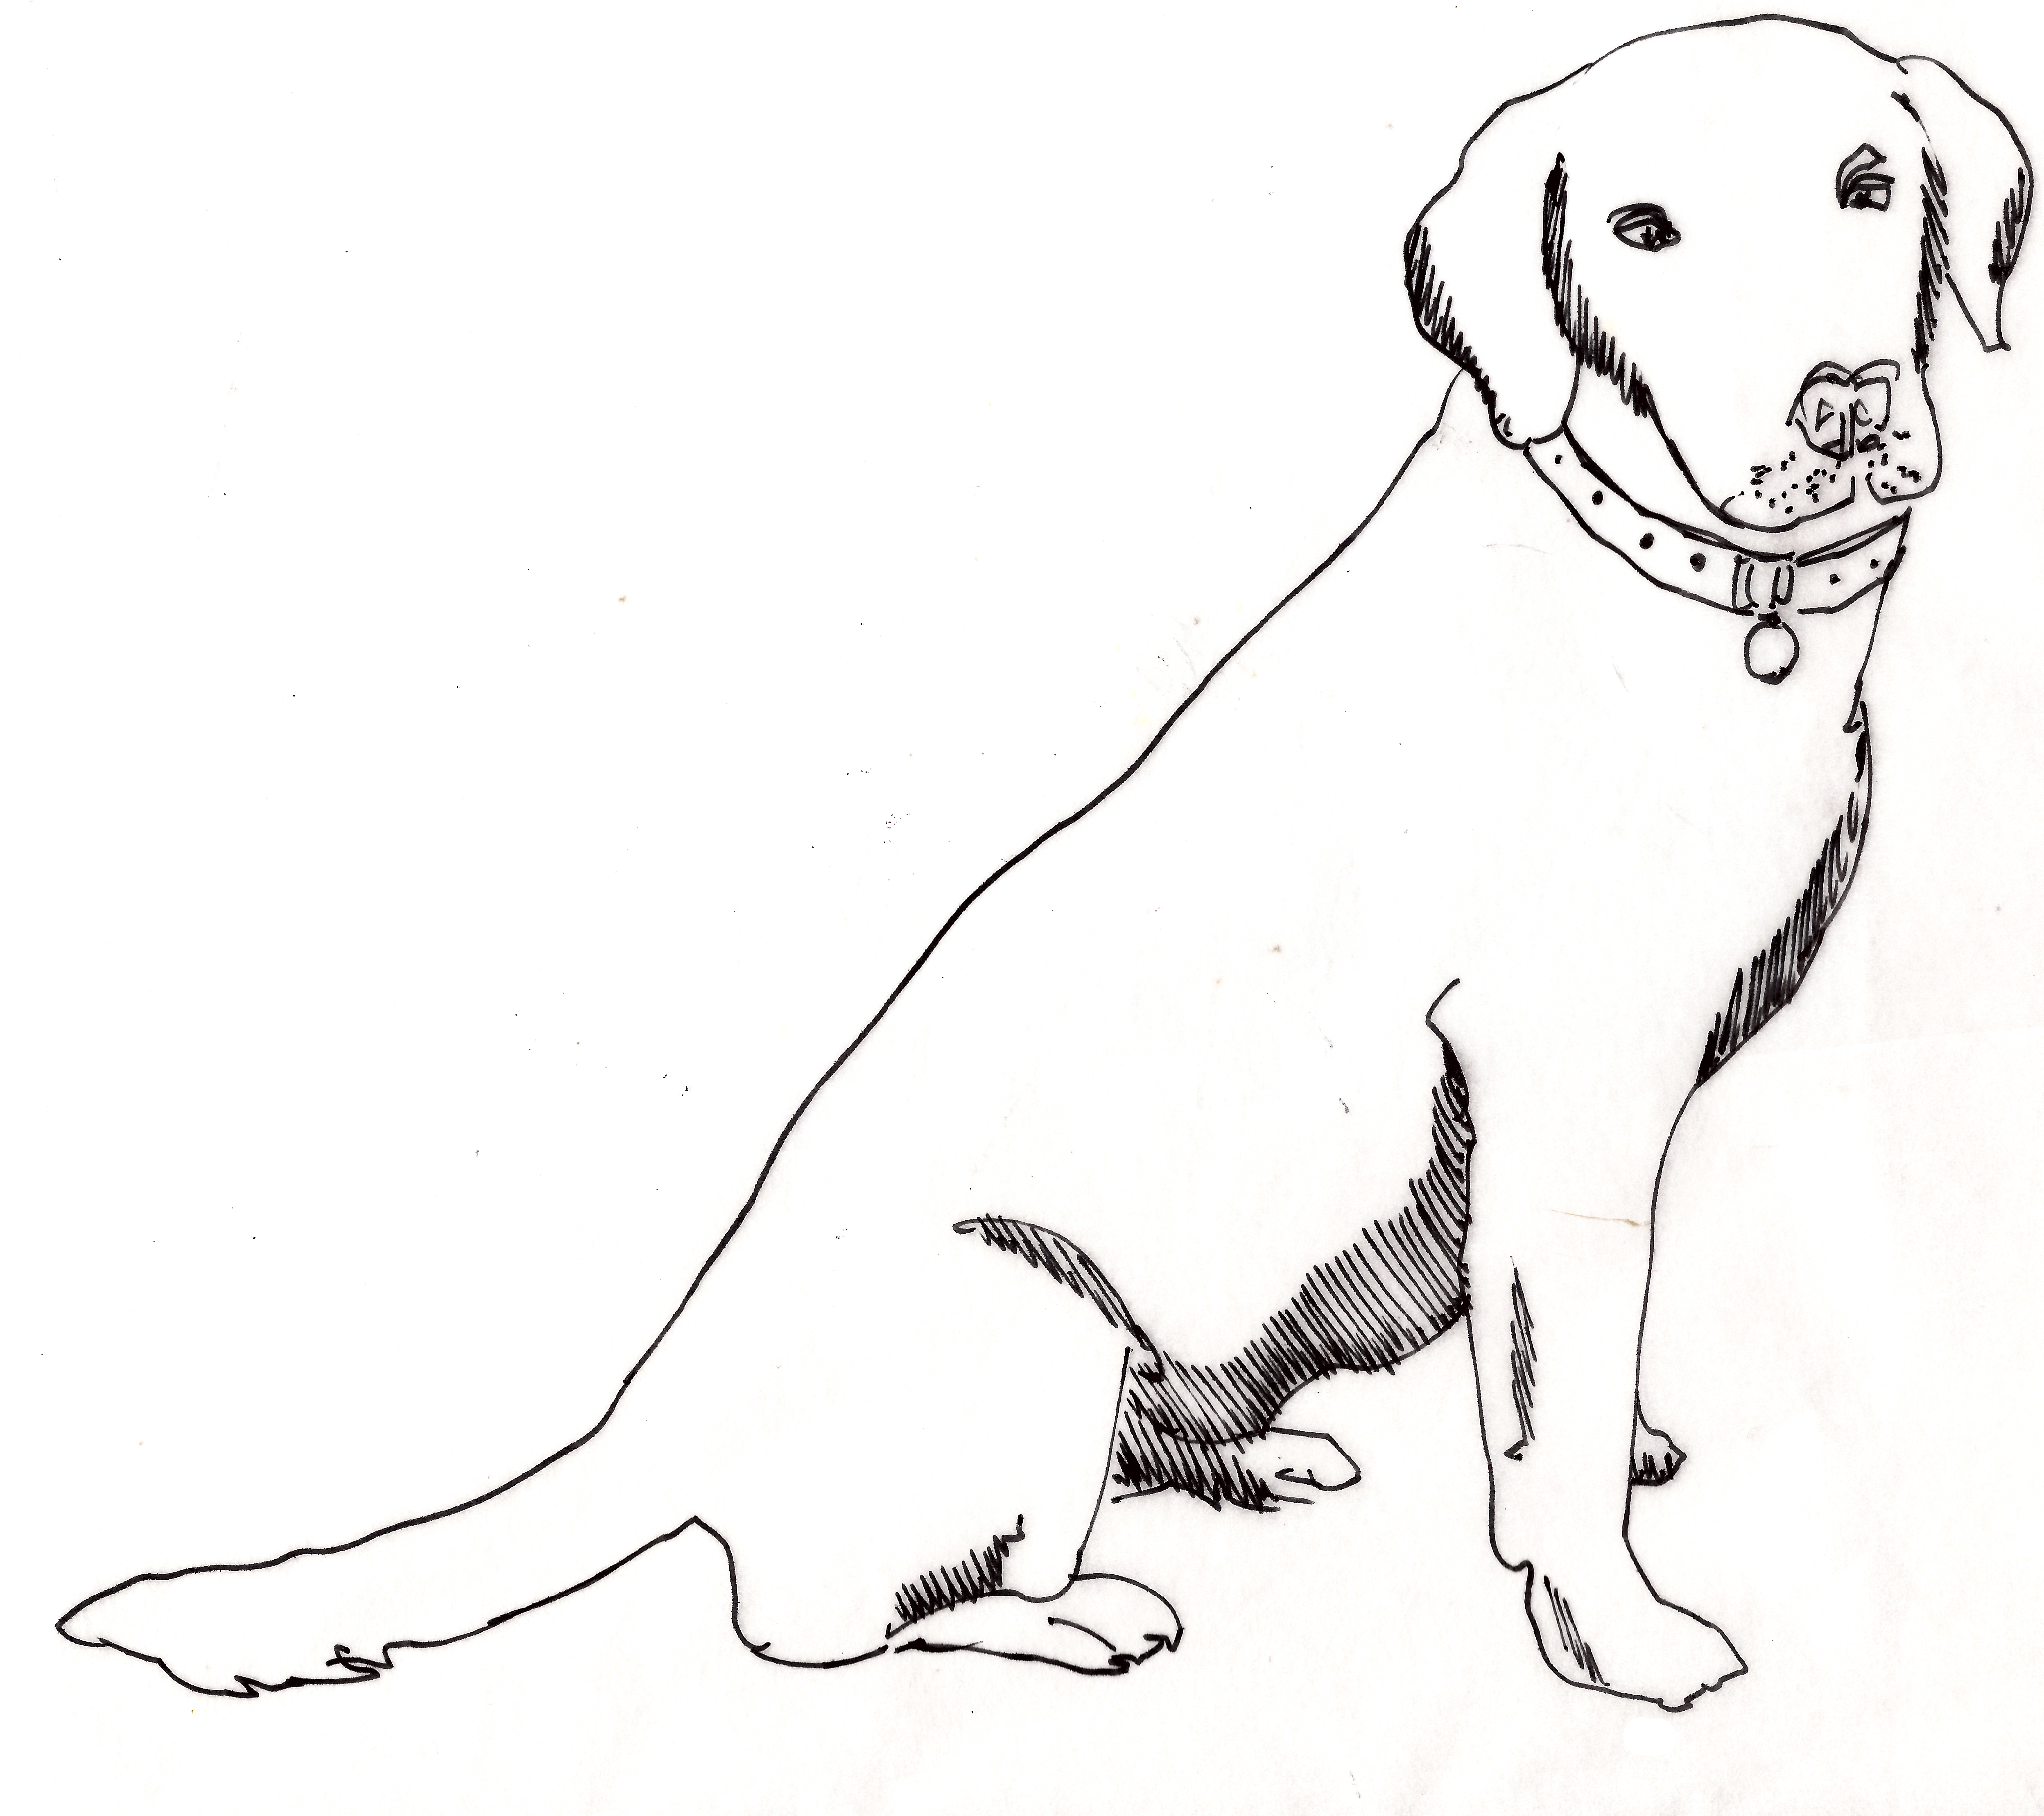 Old yeller clipart clipart images gallery for free download.